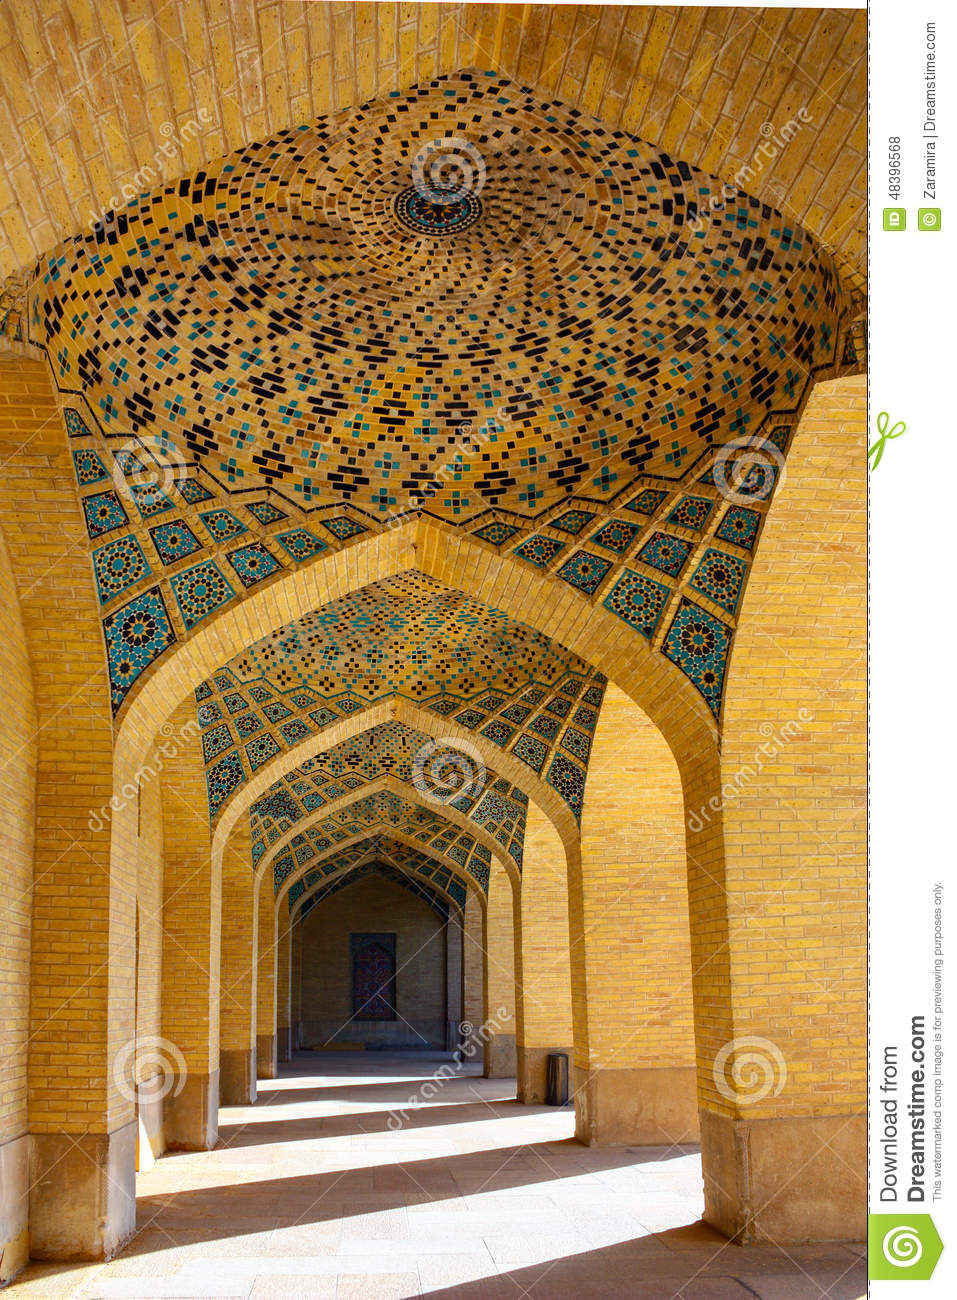 Non Muslim Perspective On The Revolution Of Imam Hussain: Iranian Architecture Stock Photo